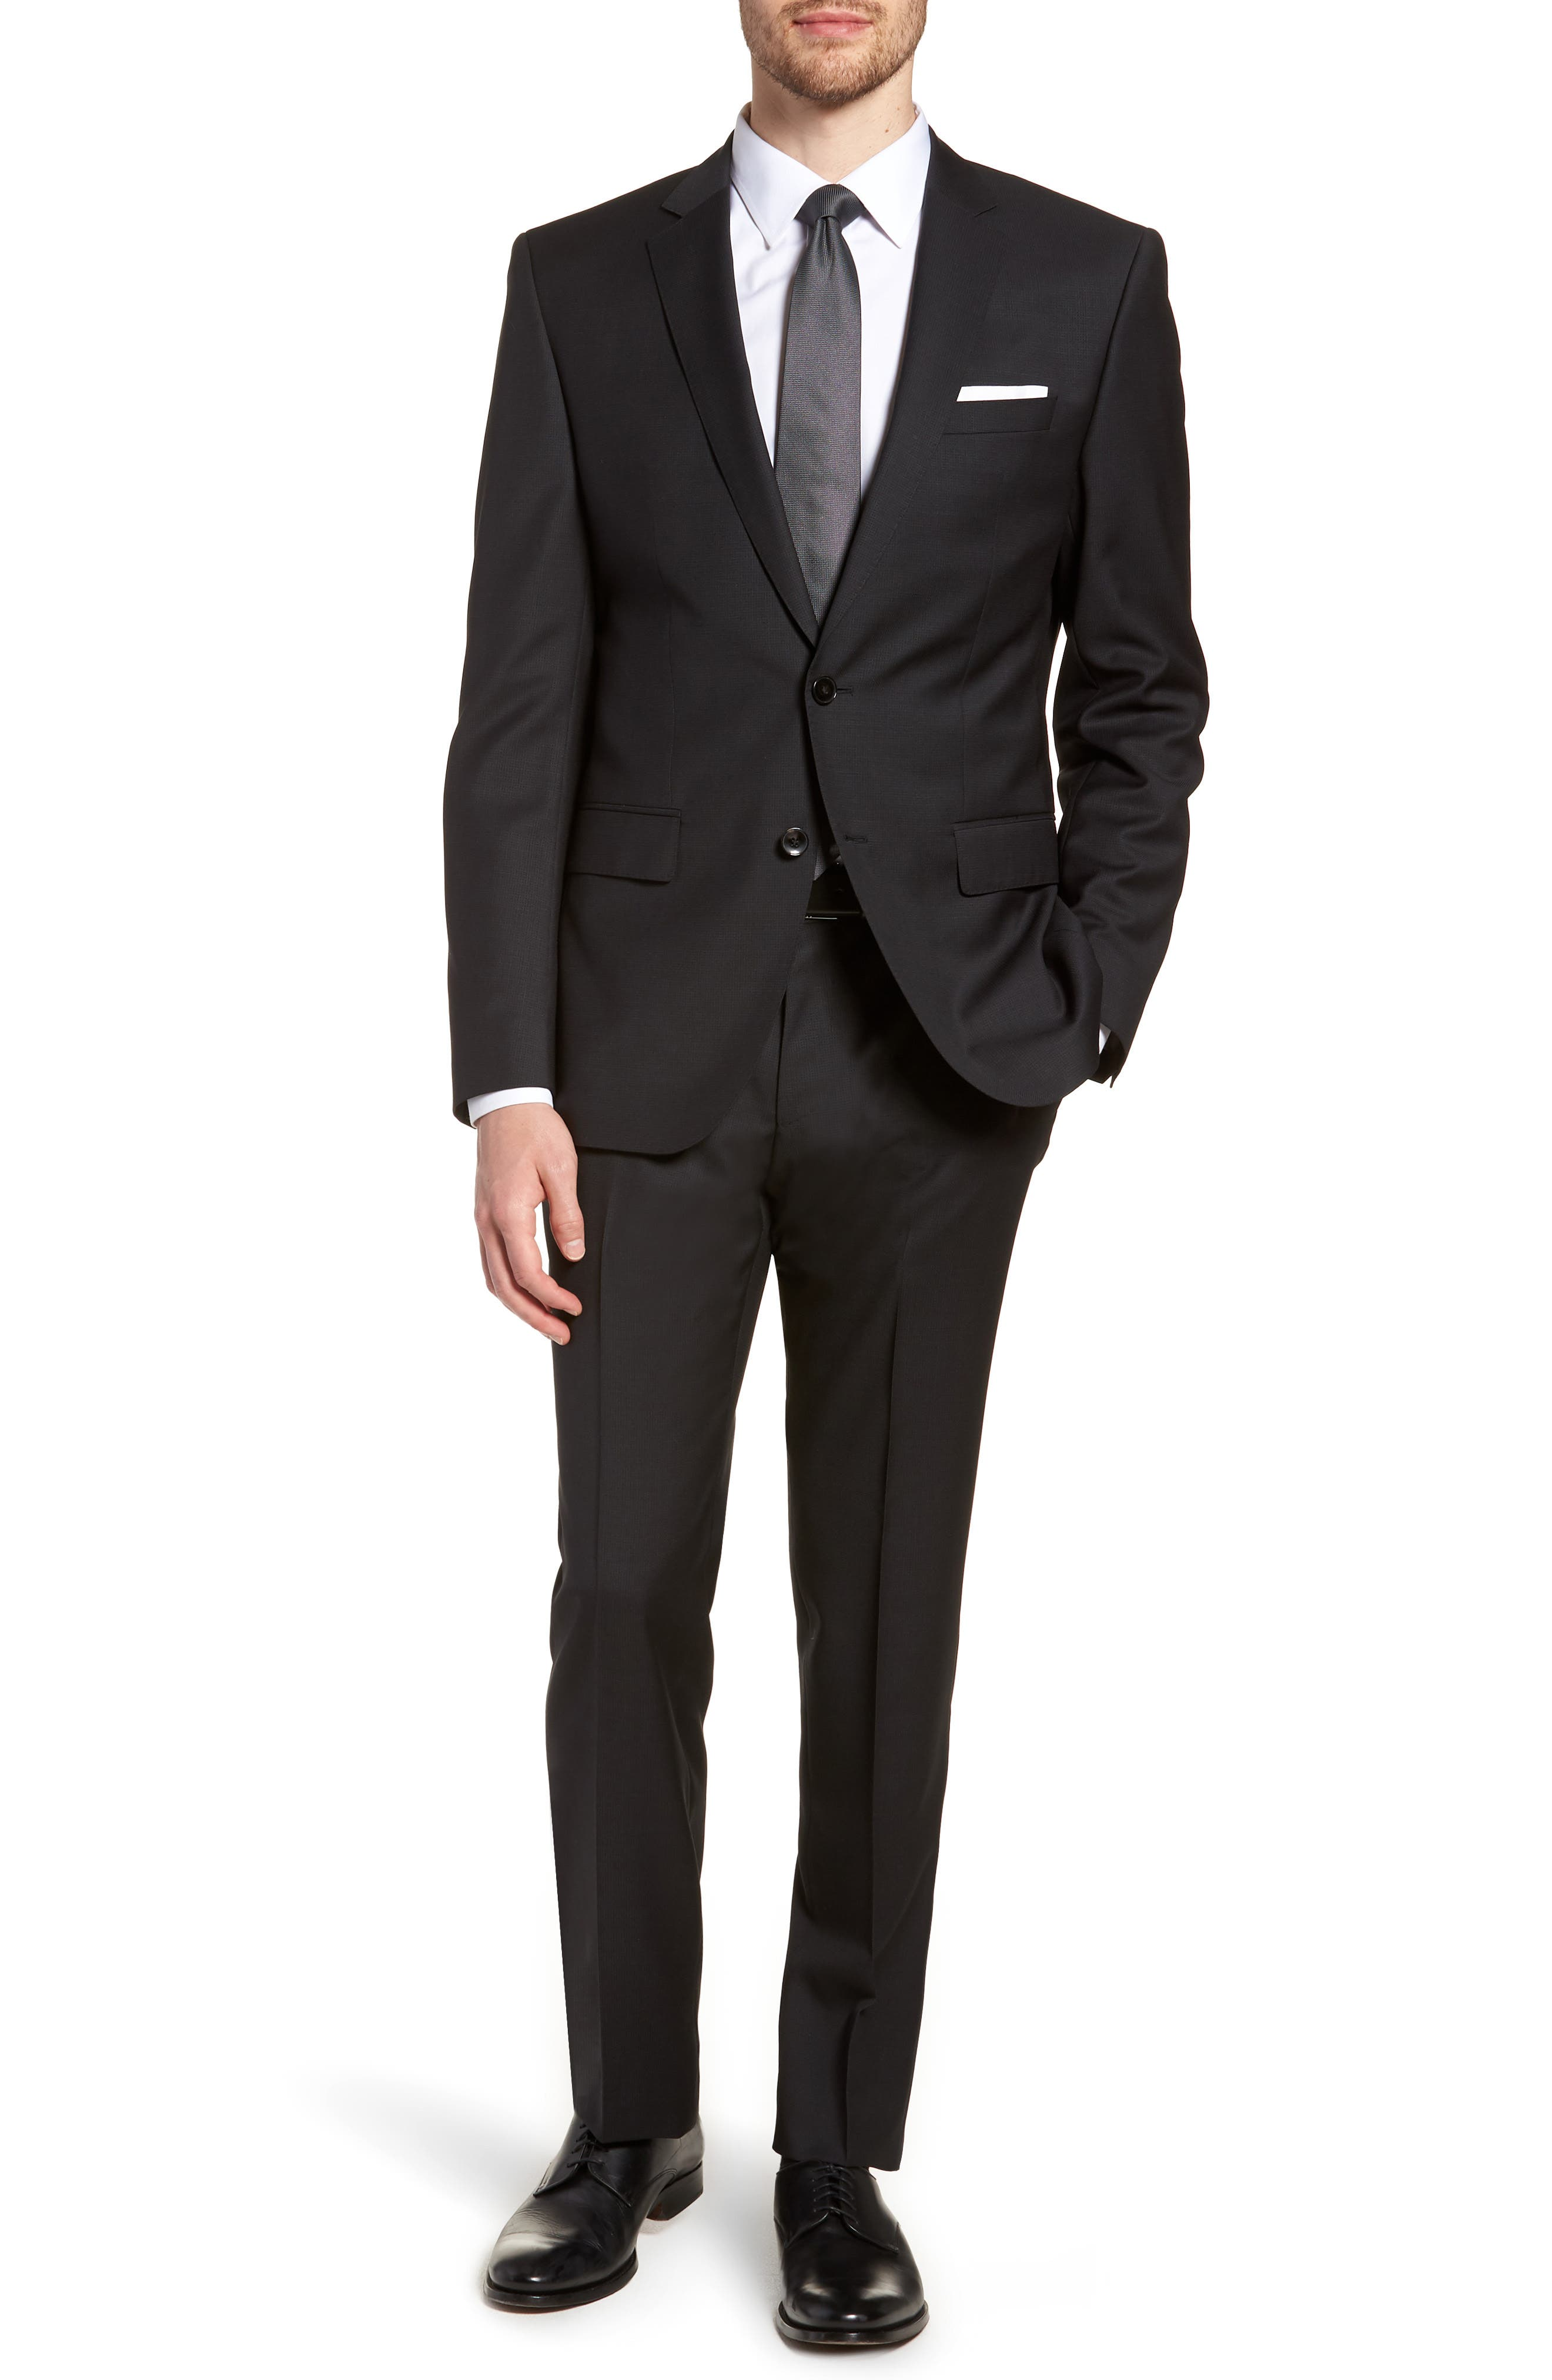 0fa1cab5d9943 UPC 722557421984 product image for Men s BOSS Trim Fit Solid Wool Suit